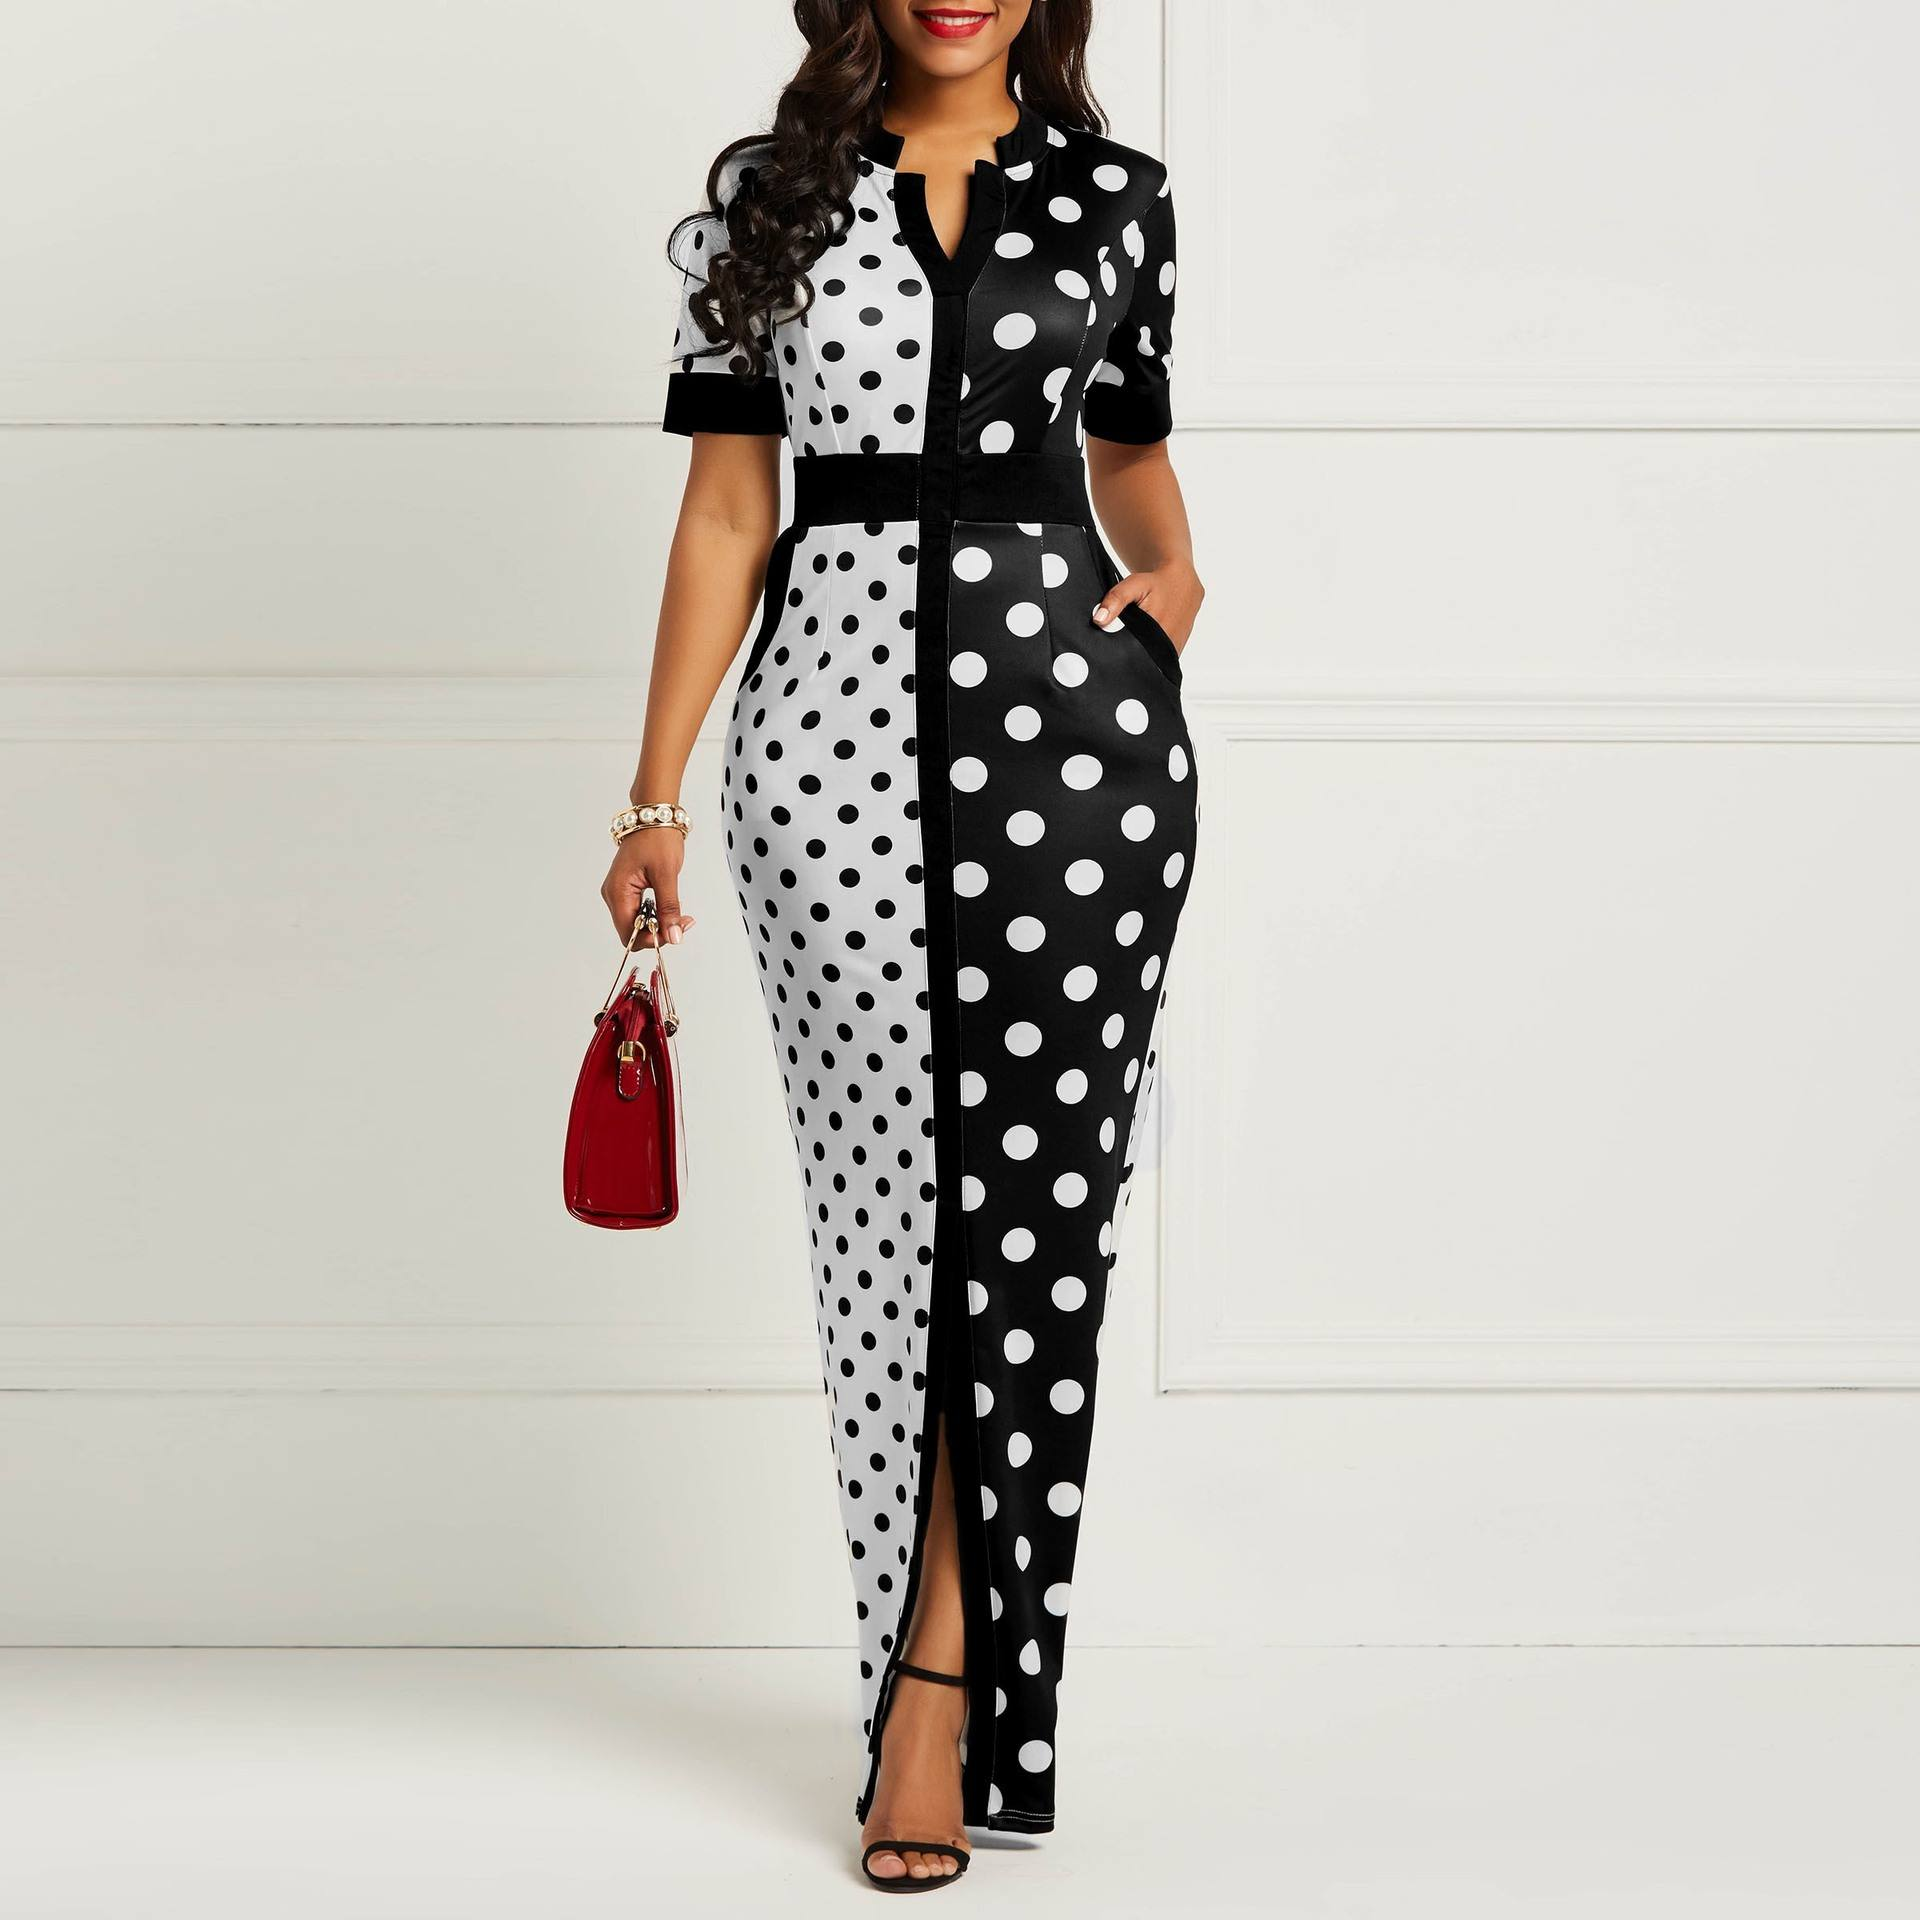 Summer Front Split Chiffon Maxi Shirt Slim White Black Polka Dot Lady Casual Dress